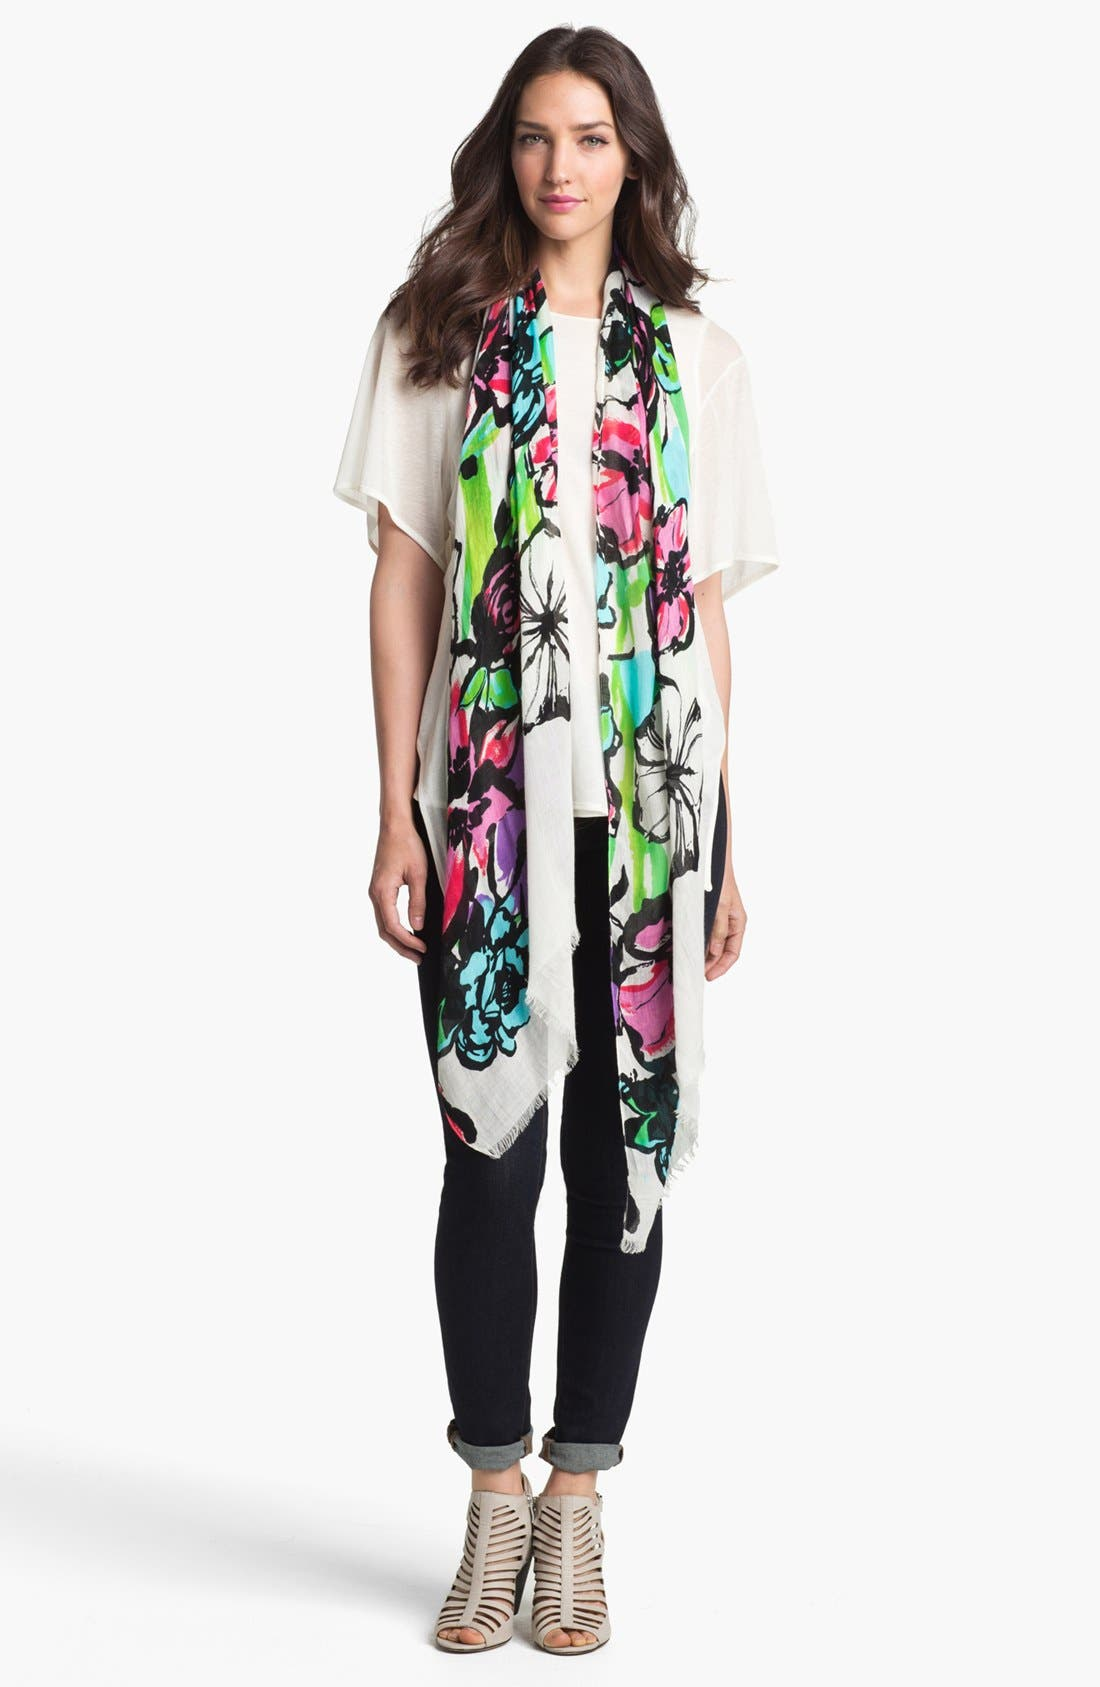 Main Image - Made of Me Accessories 'Forget Me Not Floral' Scarf